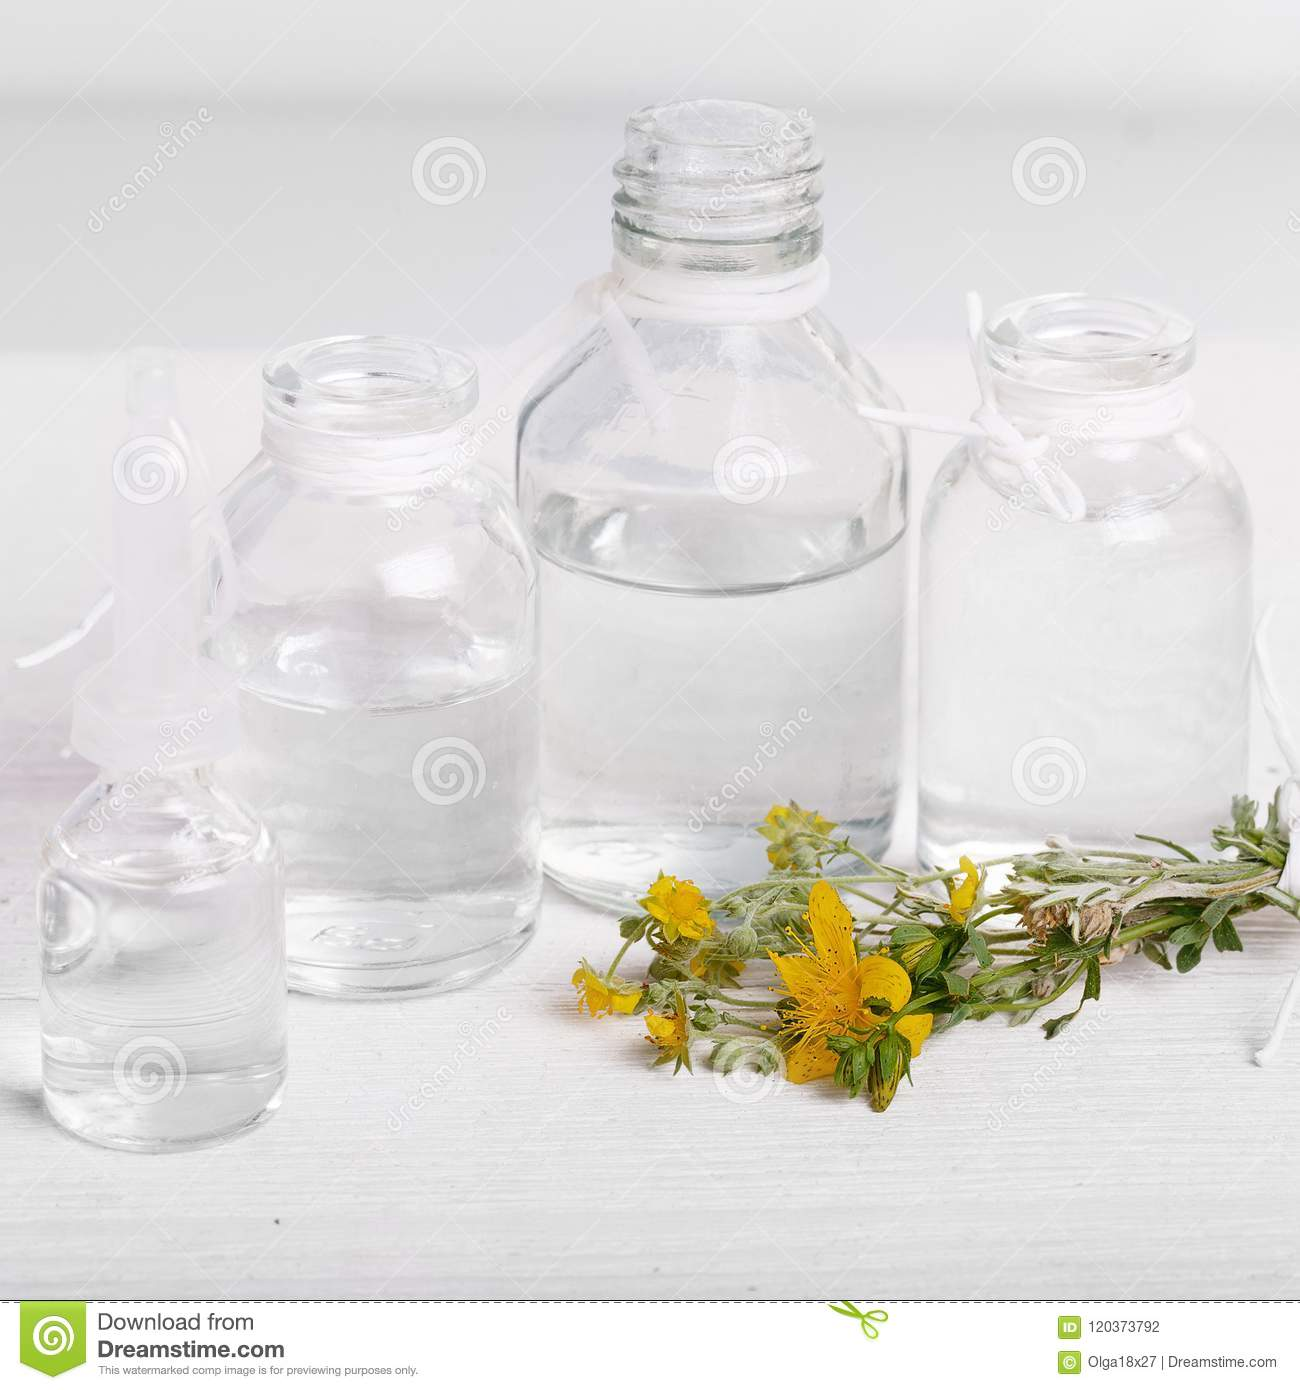 Homeopathy - A Homeopathy Concept With Homeopathic Medicine